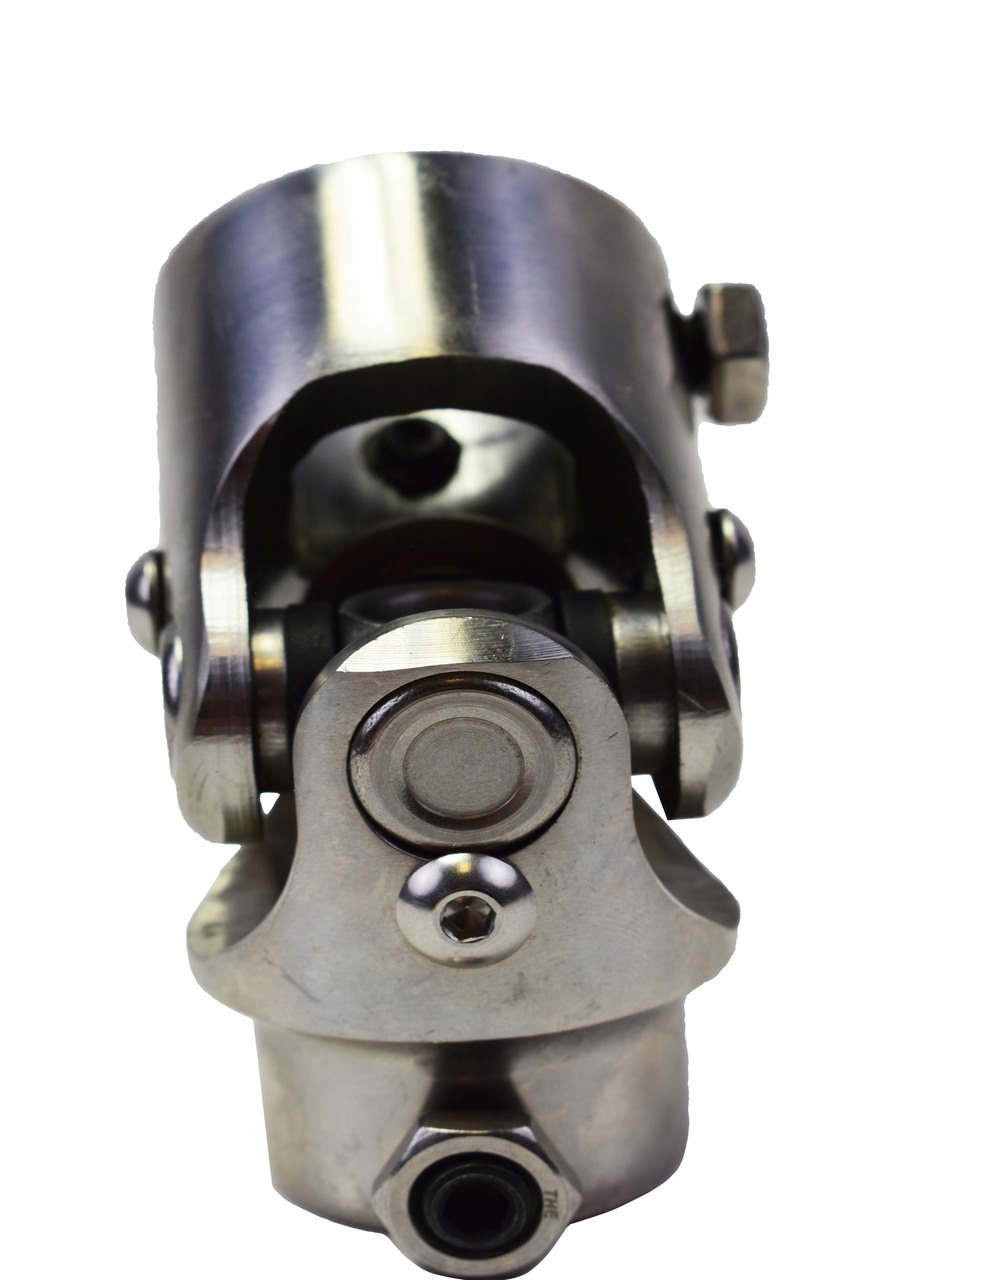 "A-Team Performance Forged Stainless Steel Yokes Steering Shaft Universal U-Joint 9/16"" 26 Spline To 1"" DD"